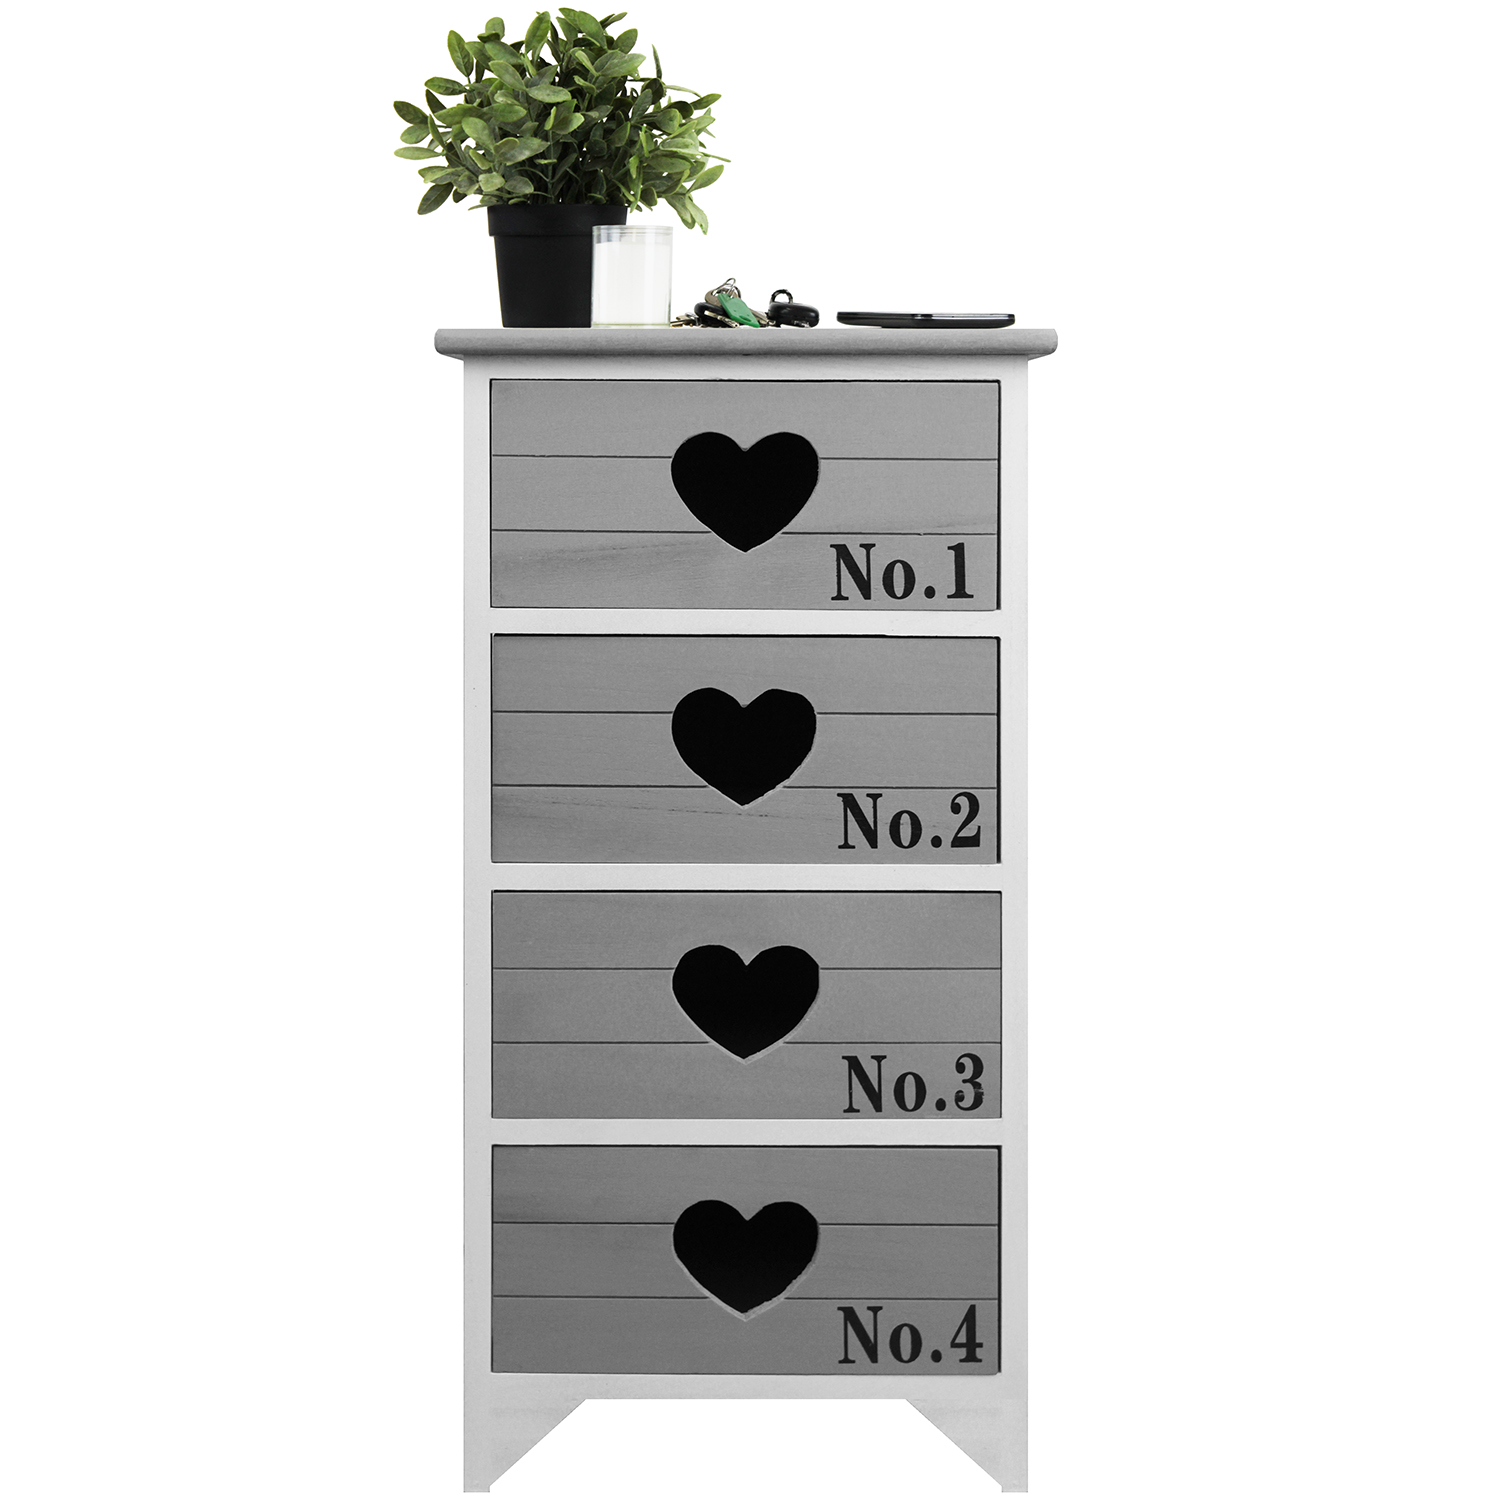 kommode mit 4 schubladen 38x28x77cm schrank. Black Bedroom Furniture Sets. Home Design Ideas